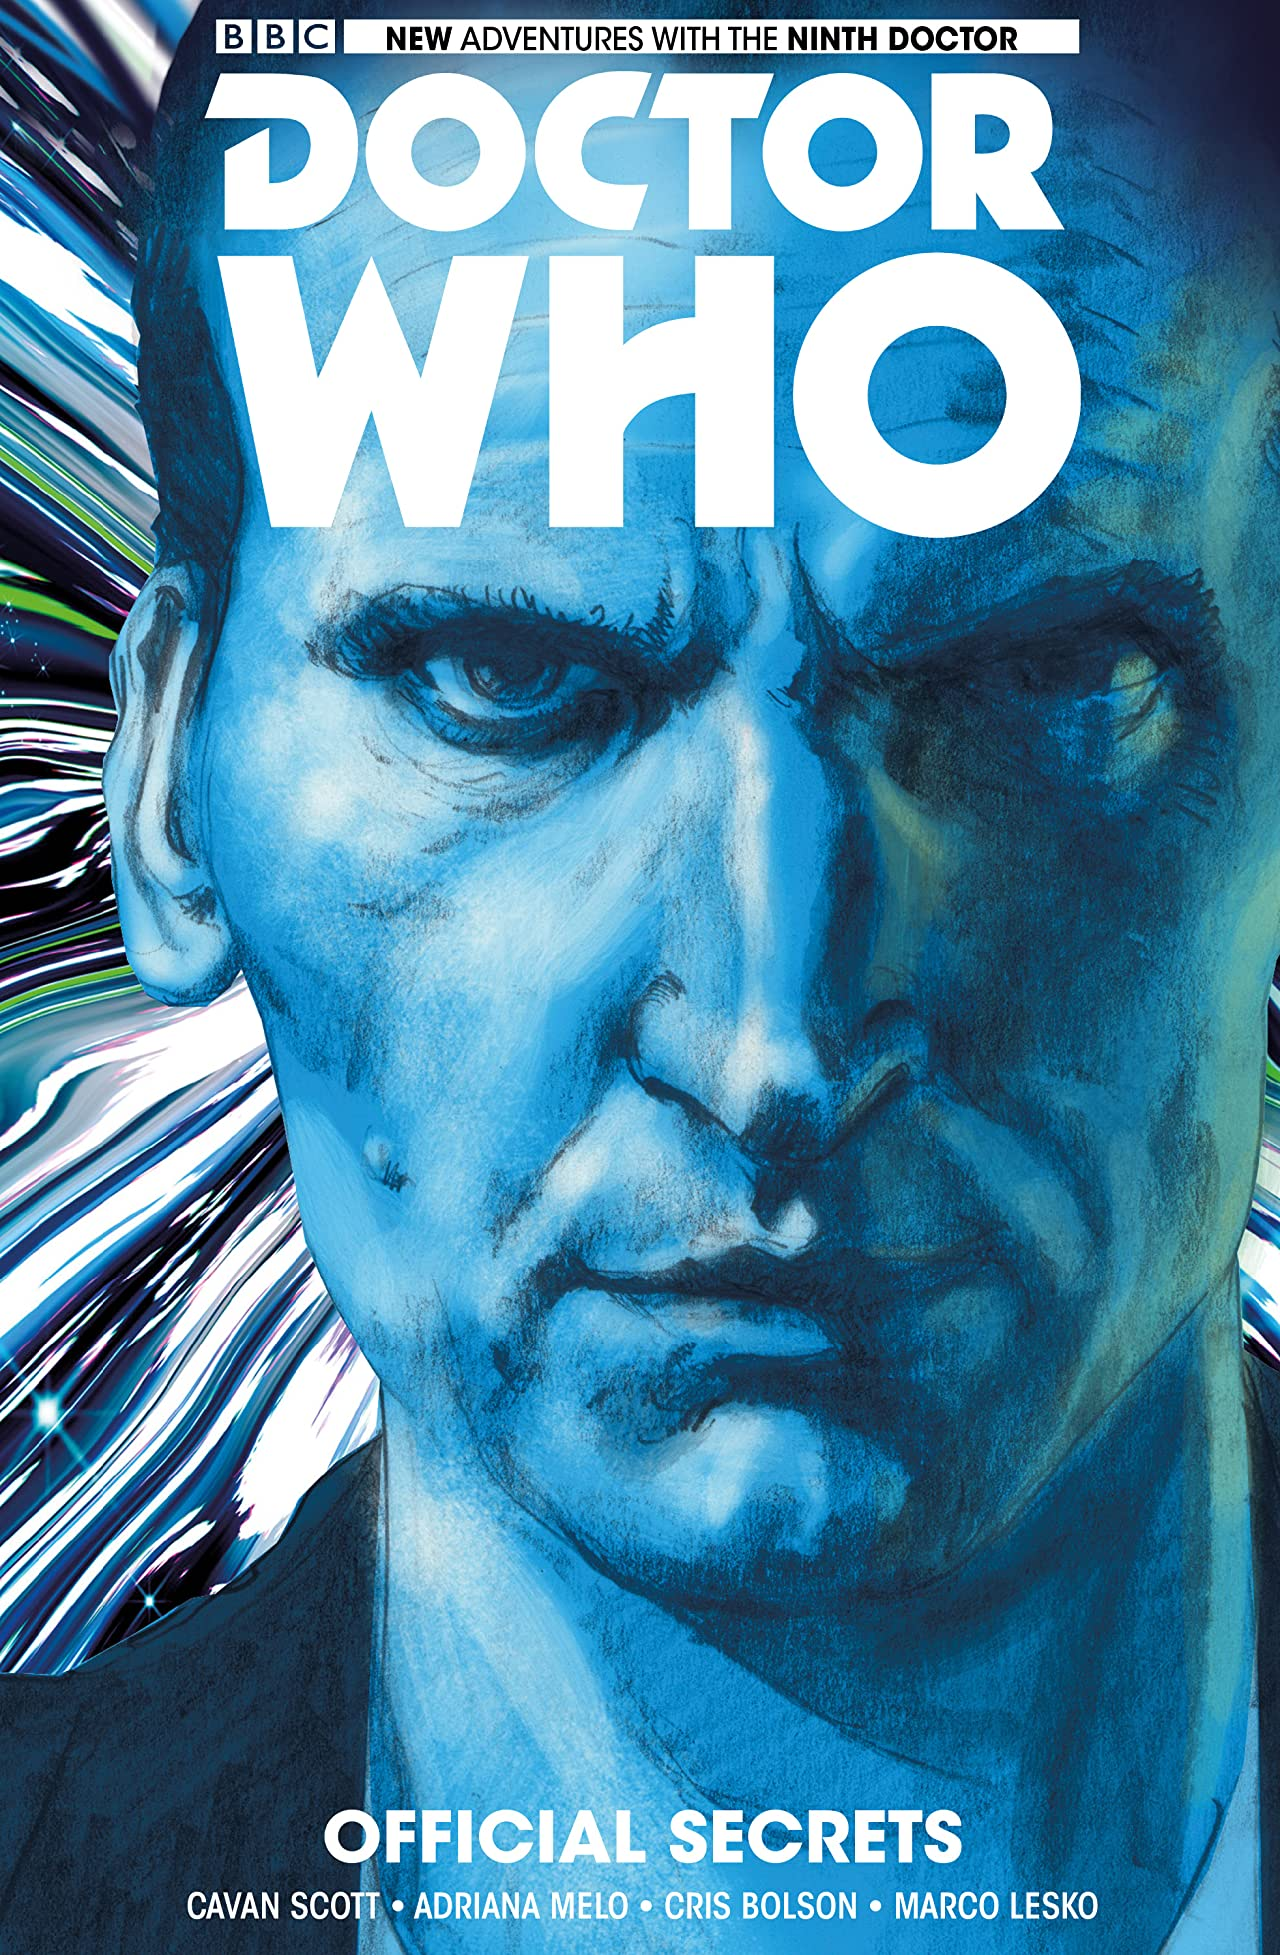 Doctor Who: The Ninth Doctor Vol. 3